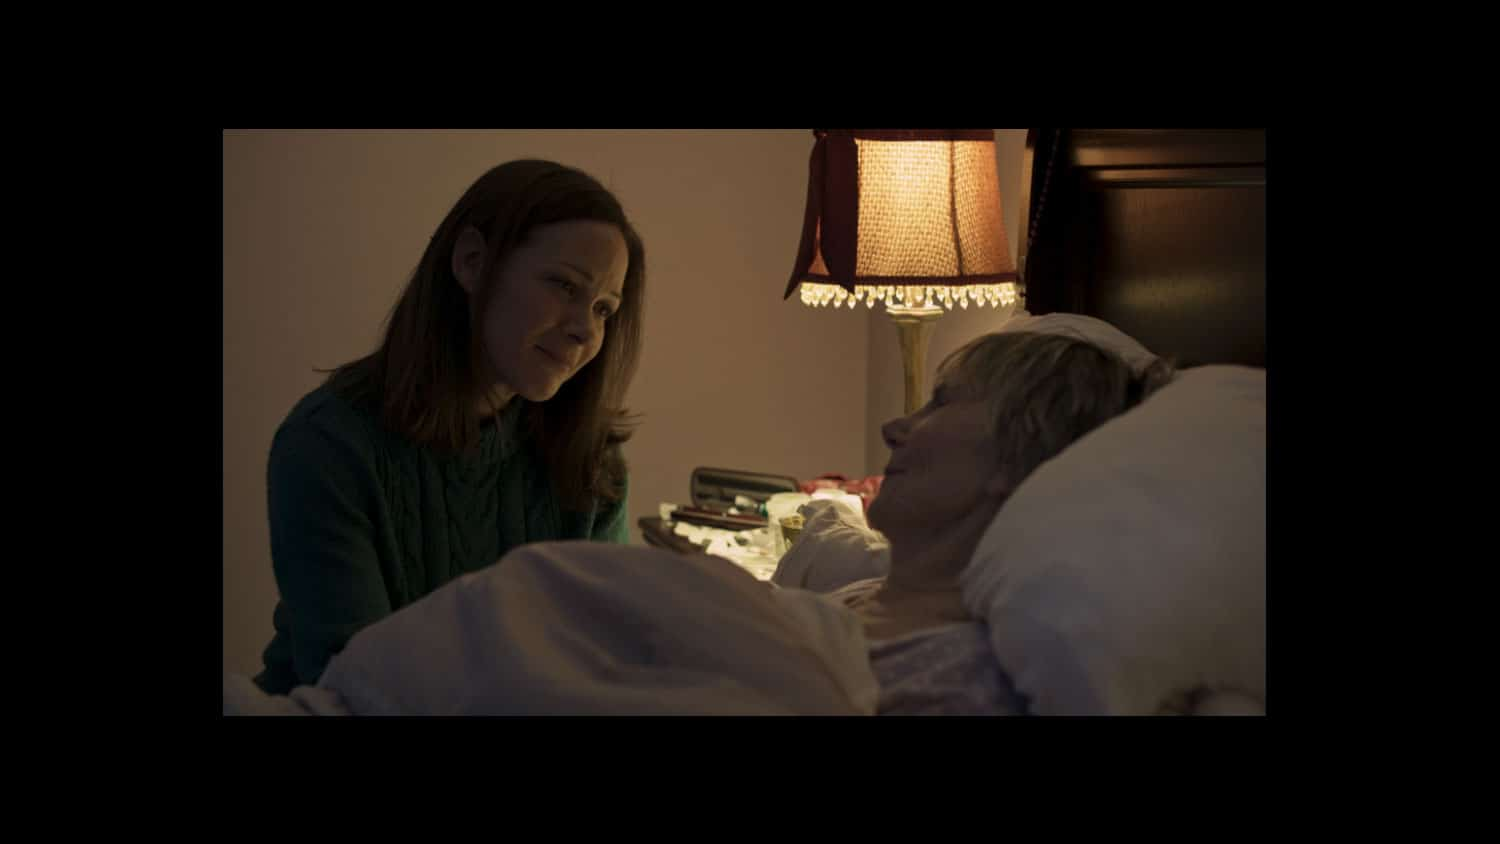 Marguerite Review – The Memories Of Youth - OC Movie Reviews - Movie Reviews, Movie News, Documentary Reviews, Short Films, Short Film Reviews, Trailers, Movie Trailers, Interviews, film reviews, film news, hollywood, indie films, documentaries